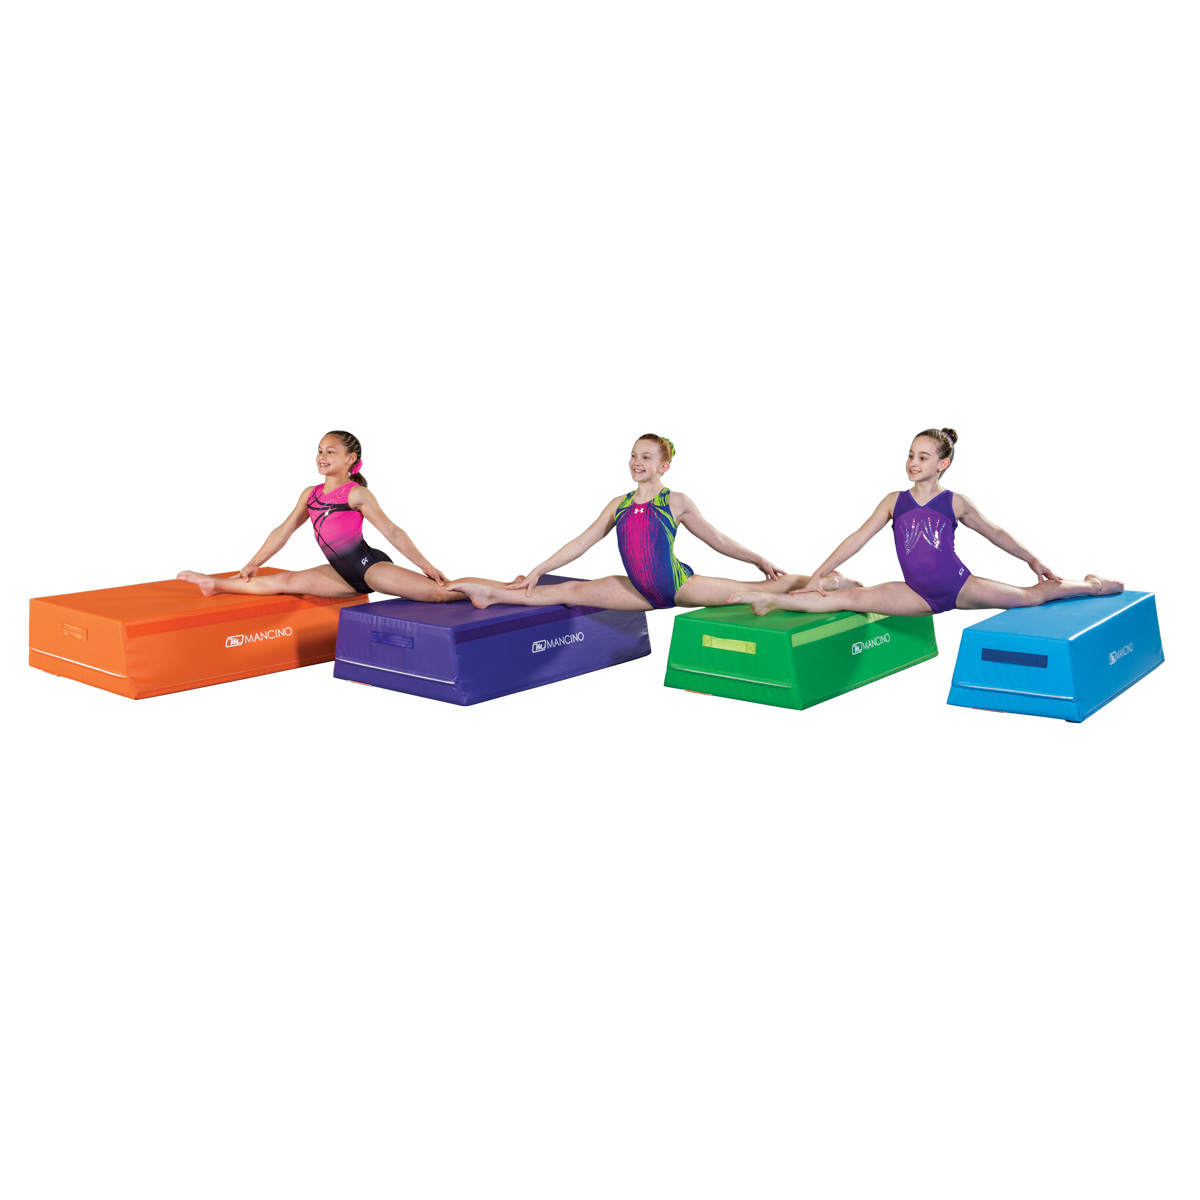 3 gymnasts doing splits on 4 sections of a trapezoid training shape